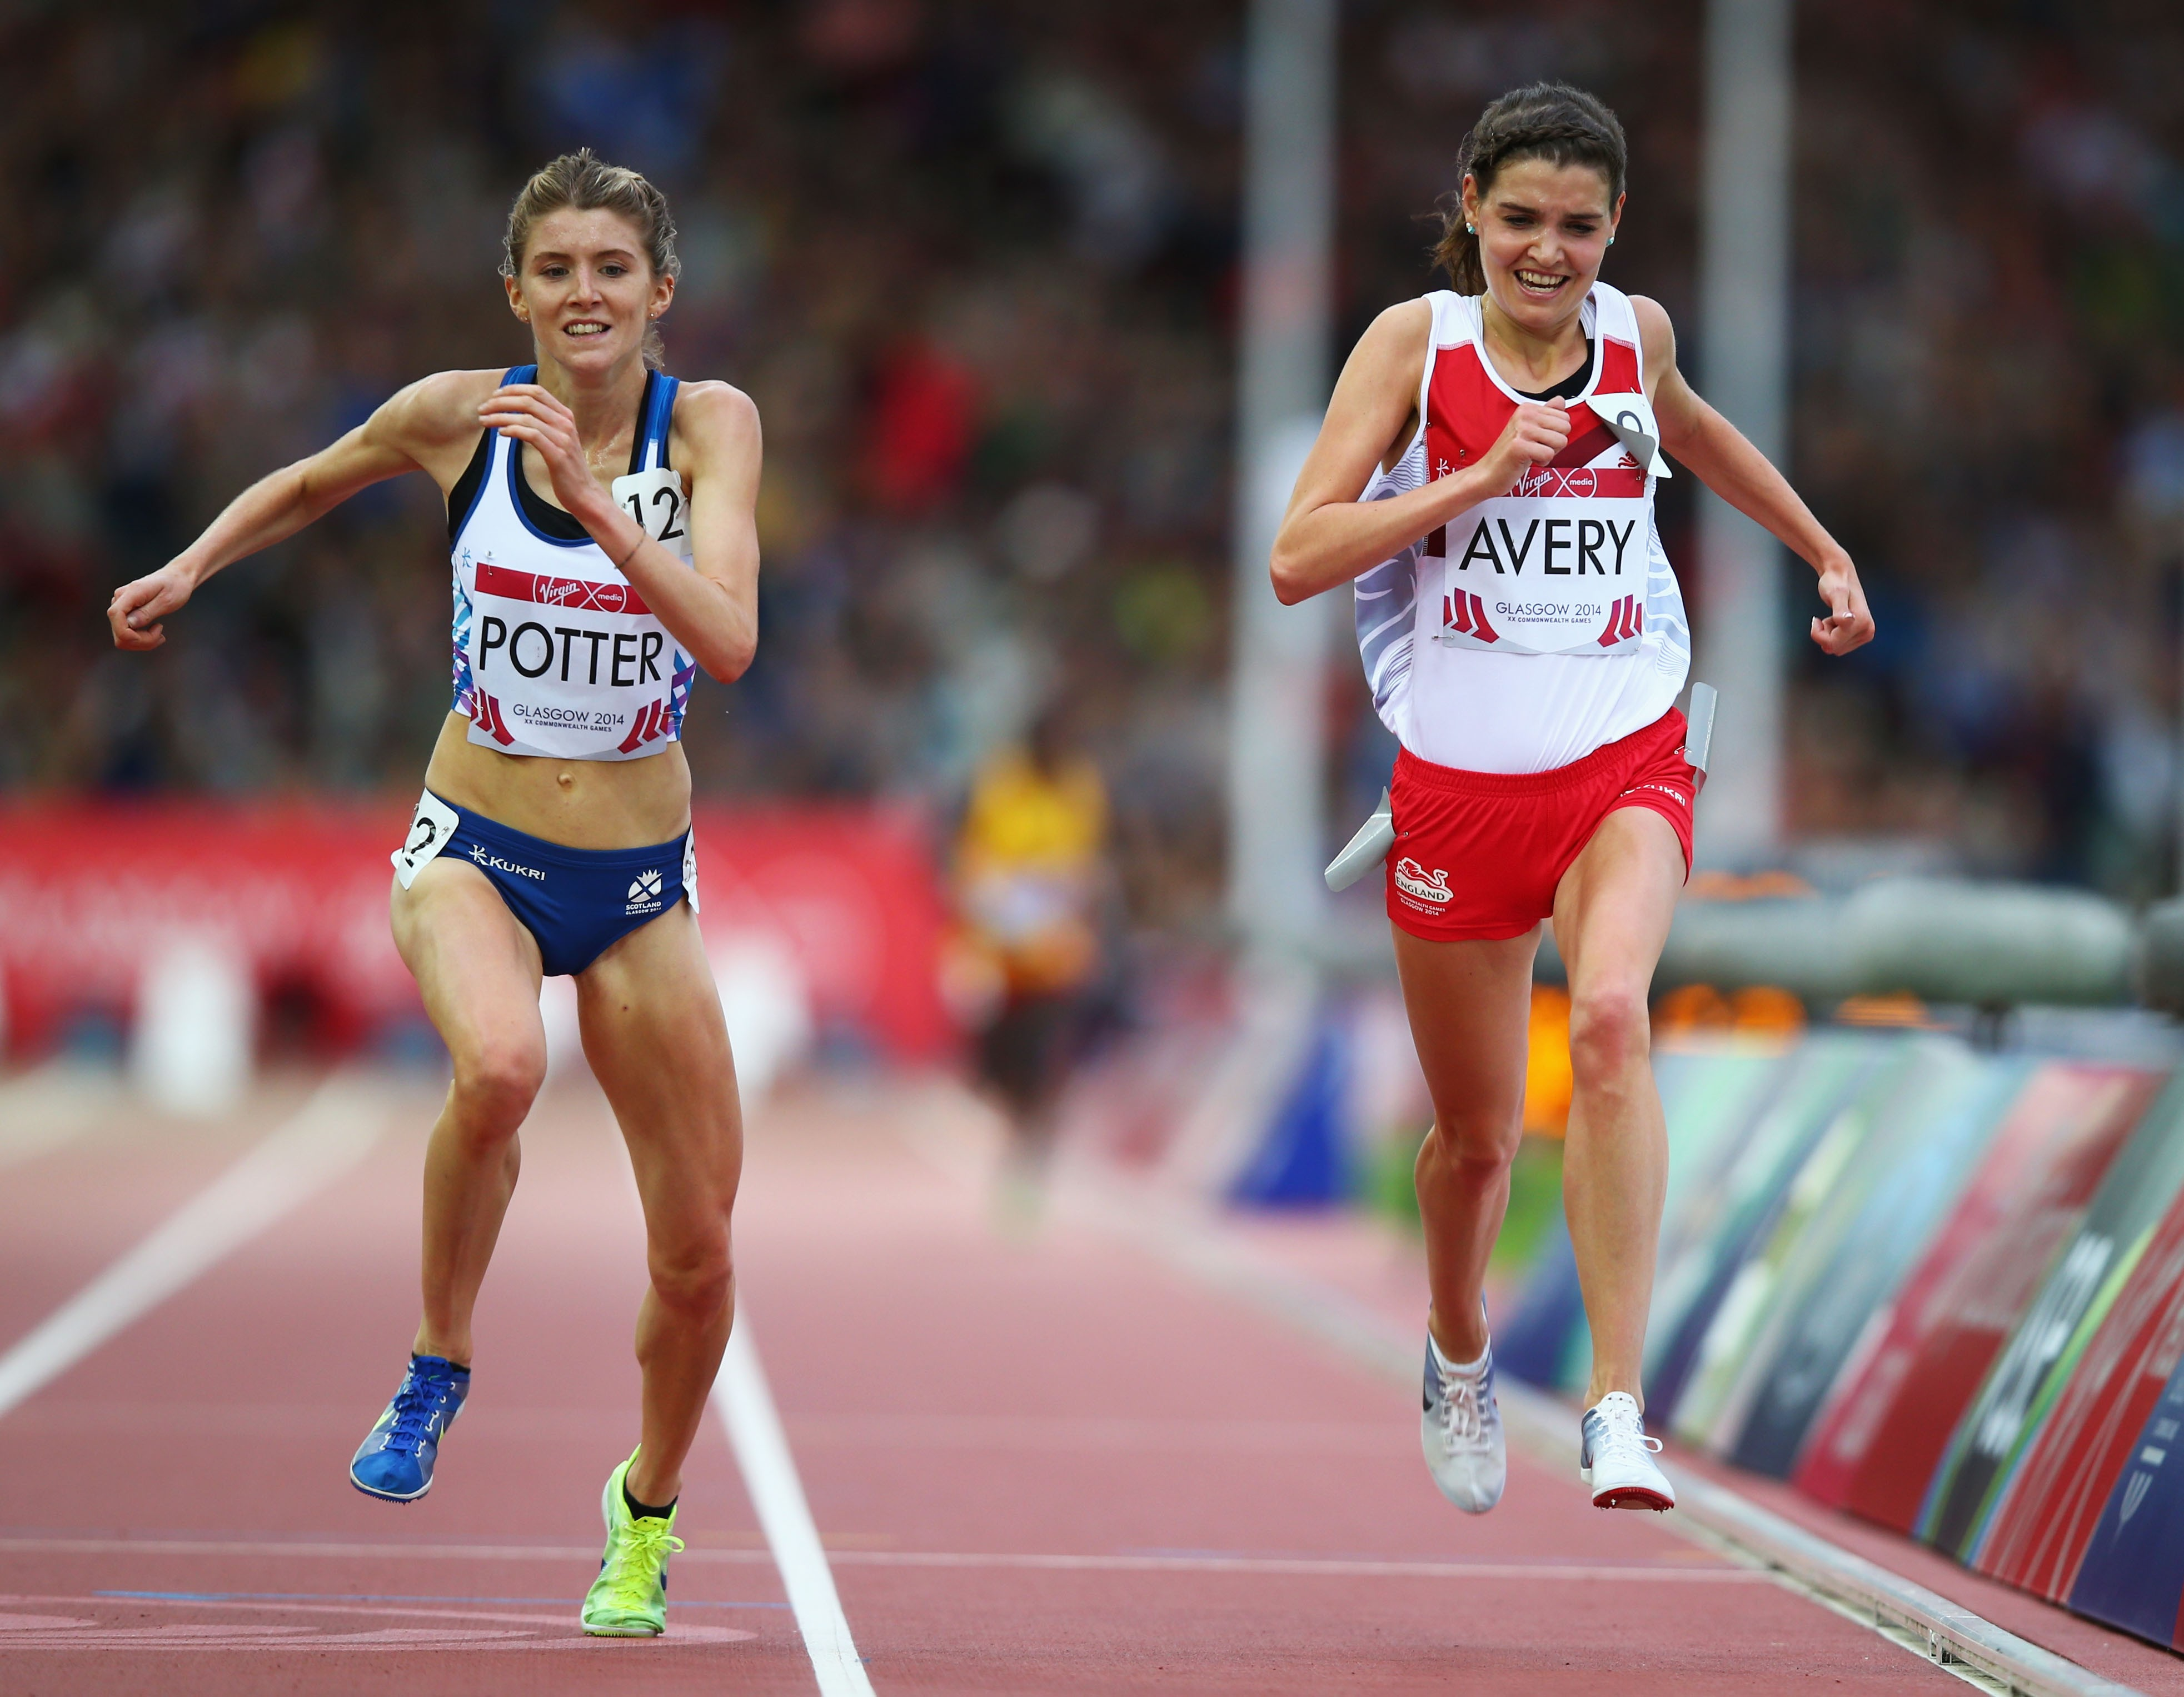 GLASGOW, SCOTLAND - JULY 29:  (L-R) Beth Potter of Scotland and Kate Avery of England sprint to the finish line in the Women's 10,000 metres final at Hampden Park during day six of the Glasgow 2014 Commonwealth Games on July 29, 2014 in Glasgow, United Kingdom.  (Photo by Clive Rose/Getty Images)